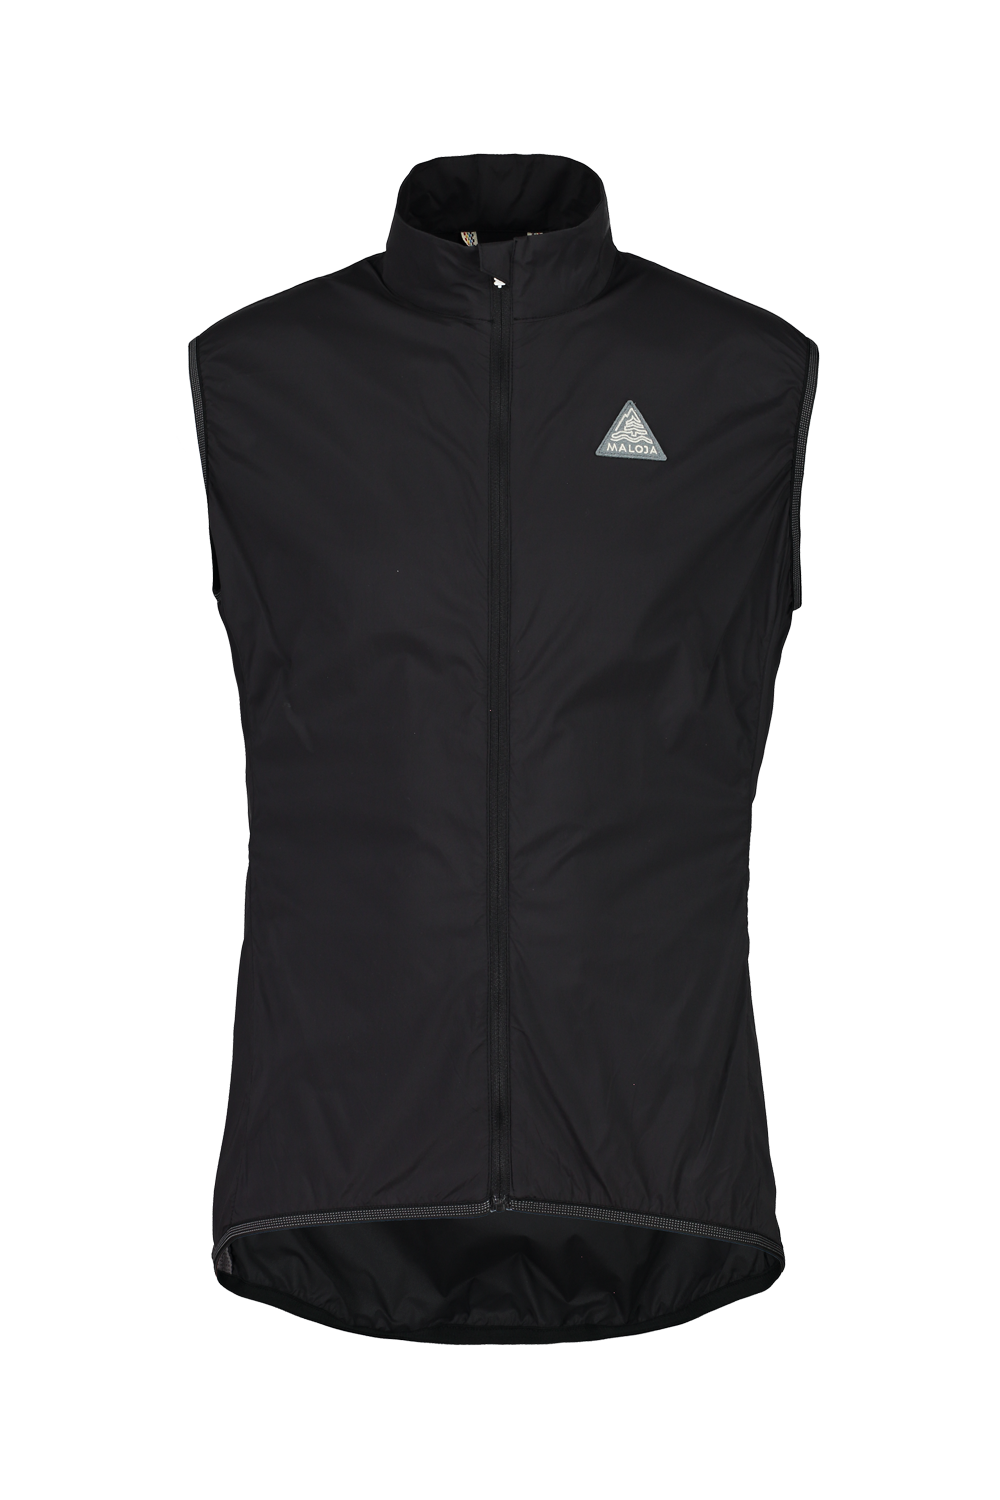 MALOJA MAXM.VEST SUPERLIGHT WB VEST MOONLESS 27237 MALOJA PE 2019